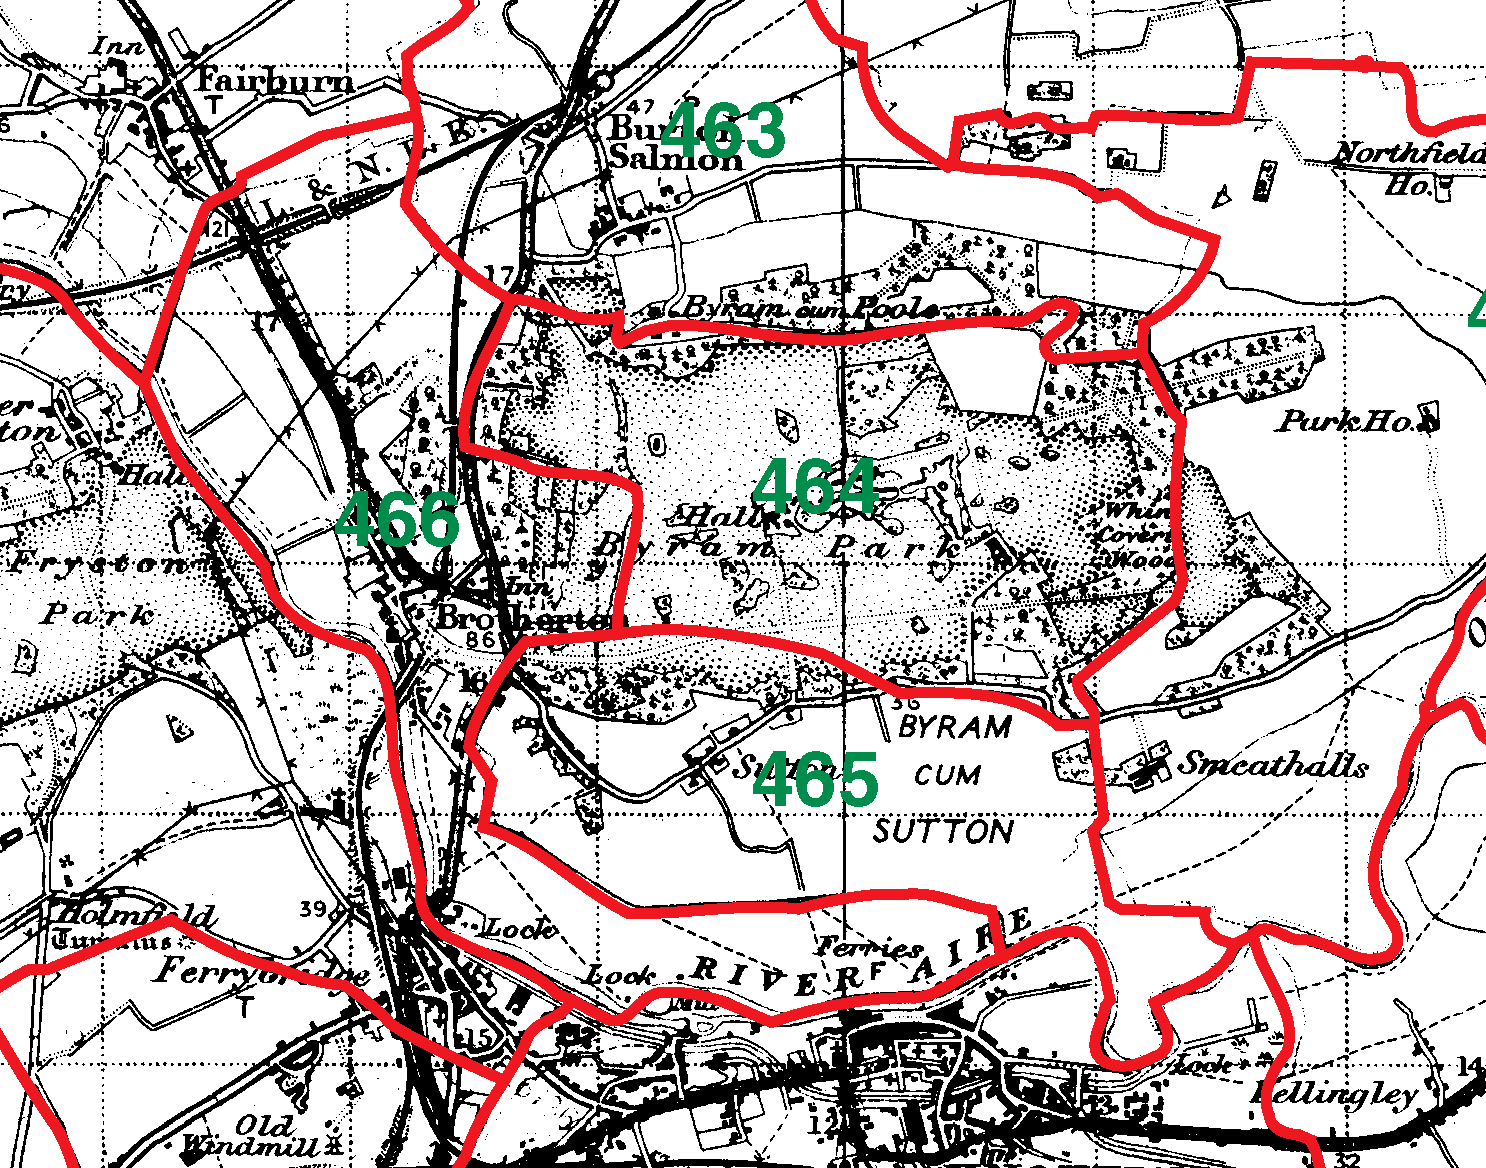 Brotherton boundaries map